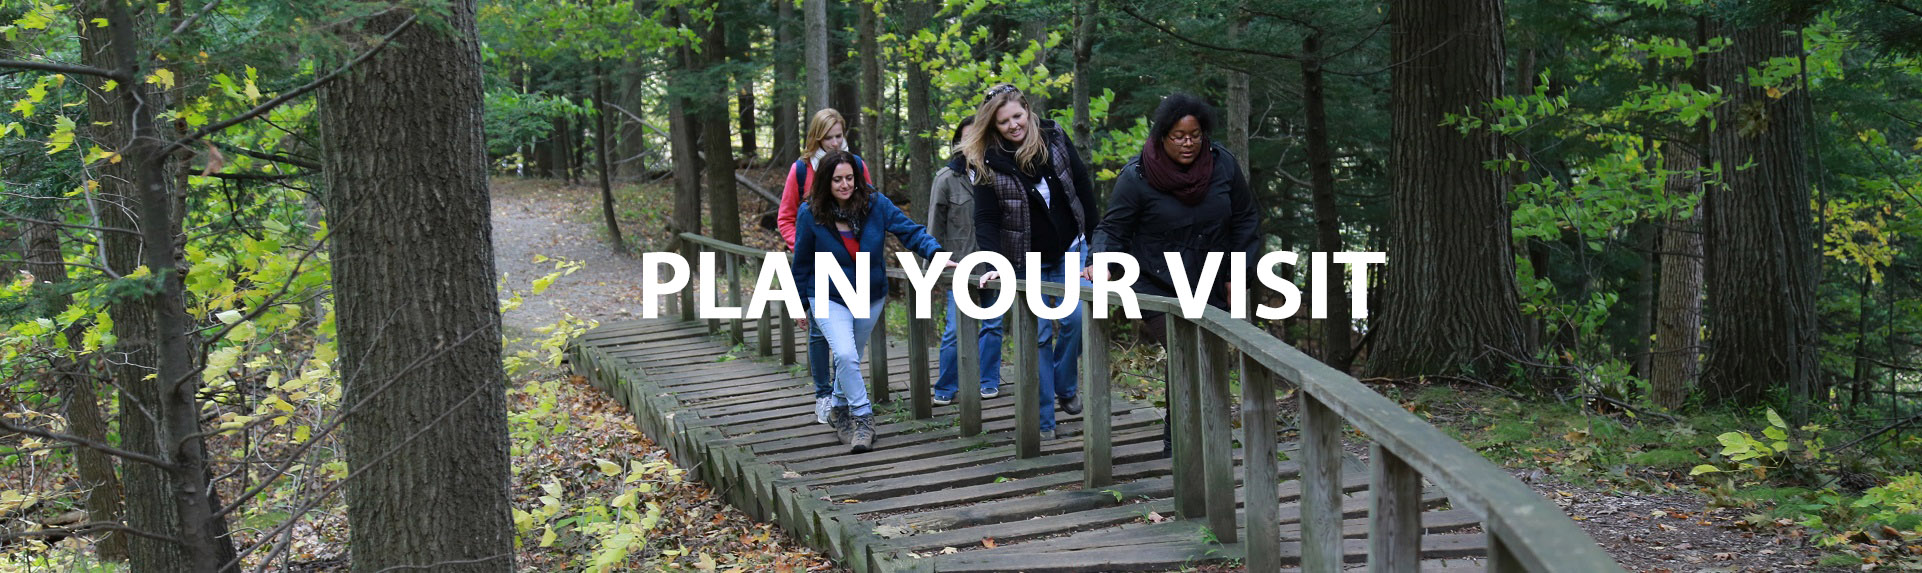 group of women explore trail at Kortright Centre